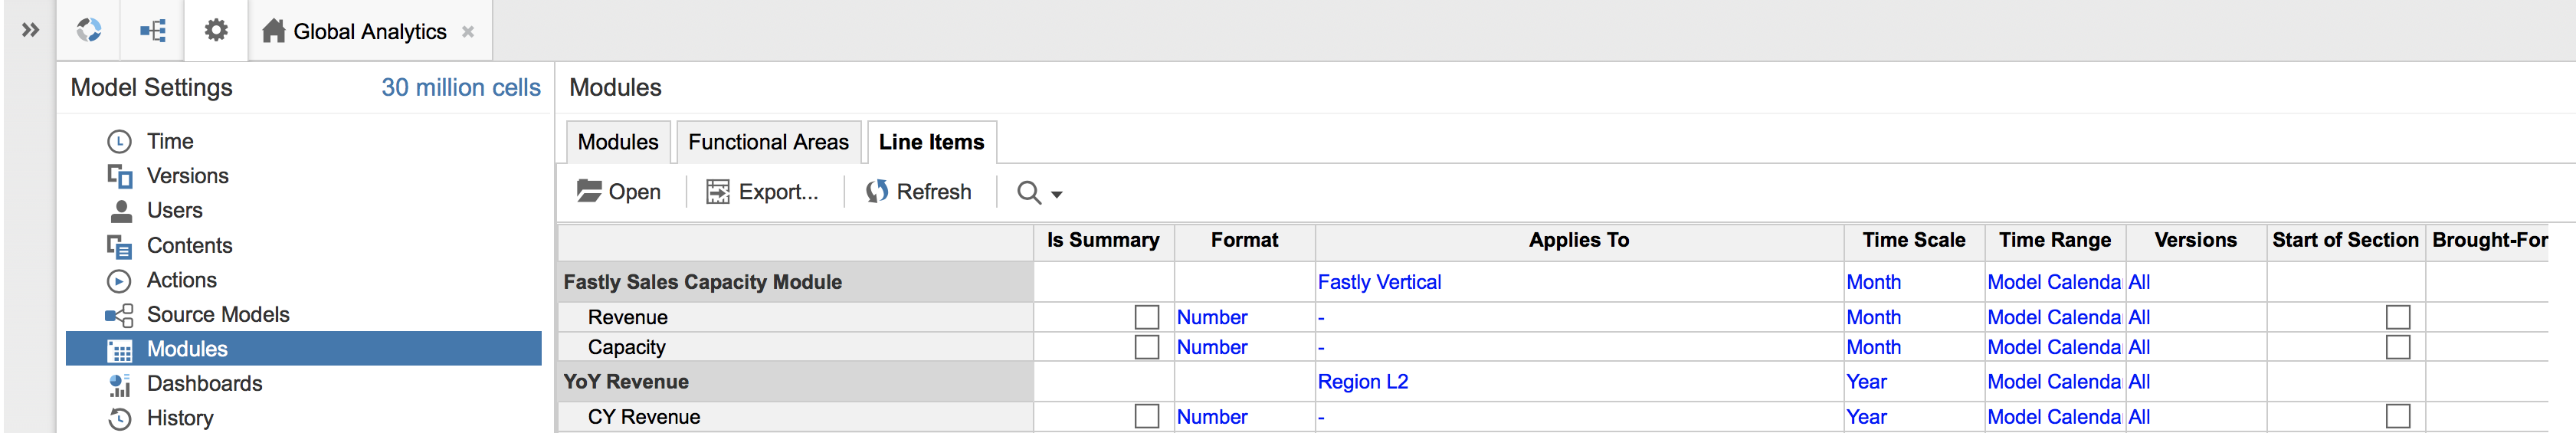 An Anaplan model with Modules selected in Model Settings, and Line Items selected within Modules. Line Items are listed in the first column, with settings in the columns to the right.